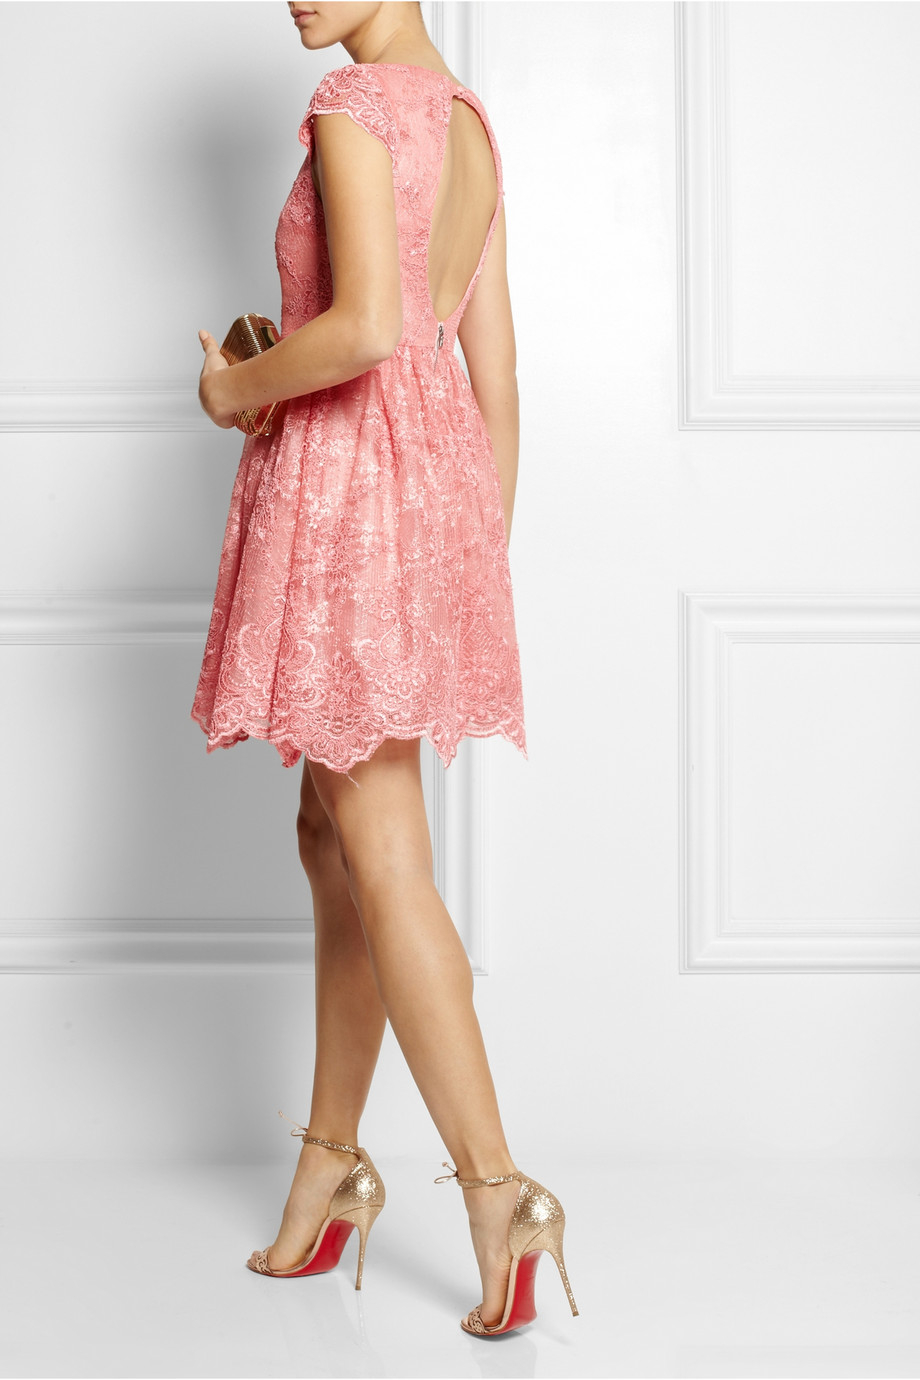 Alice Olivia Zenden Embroidered Lace Mini Dress In Pink